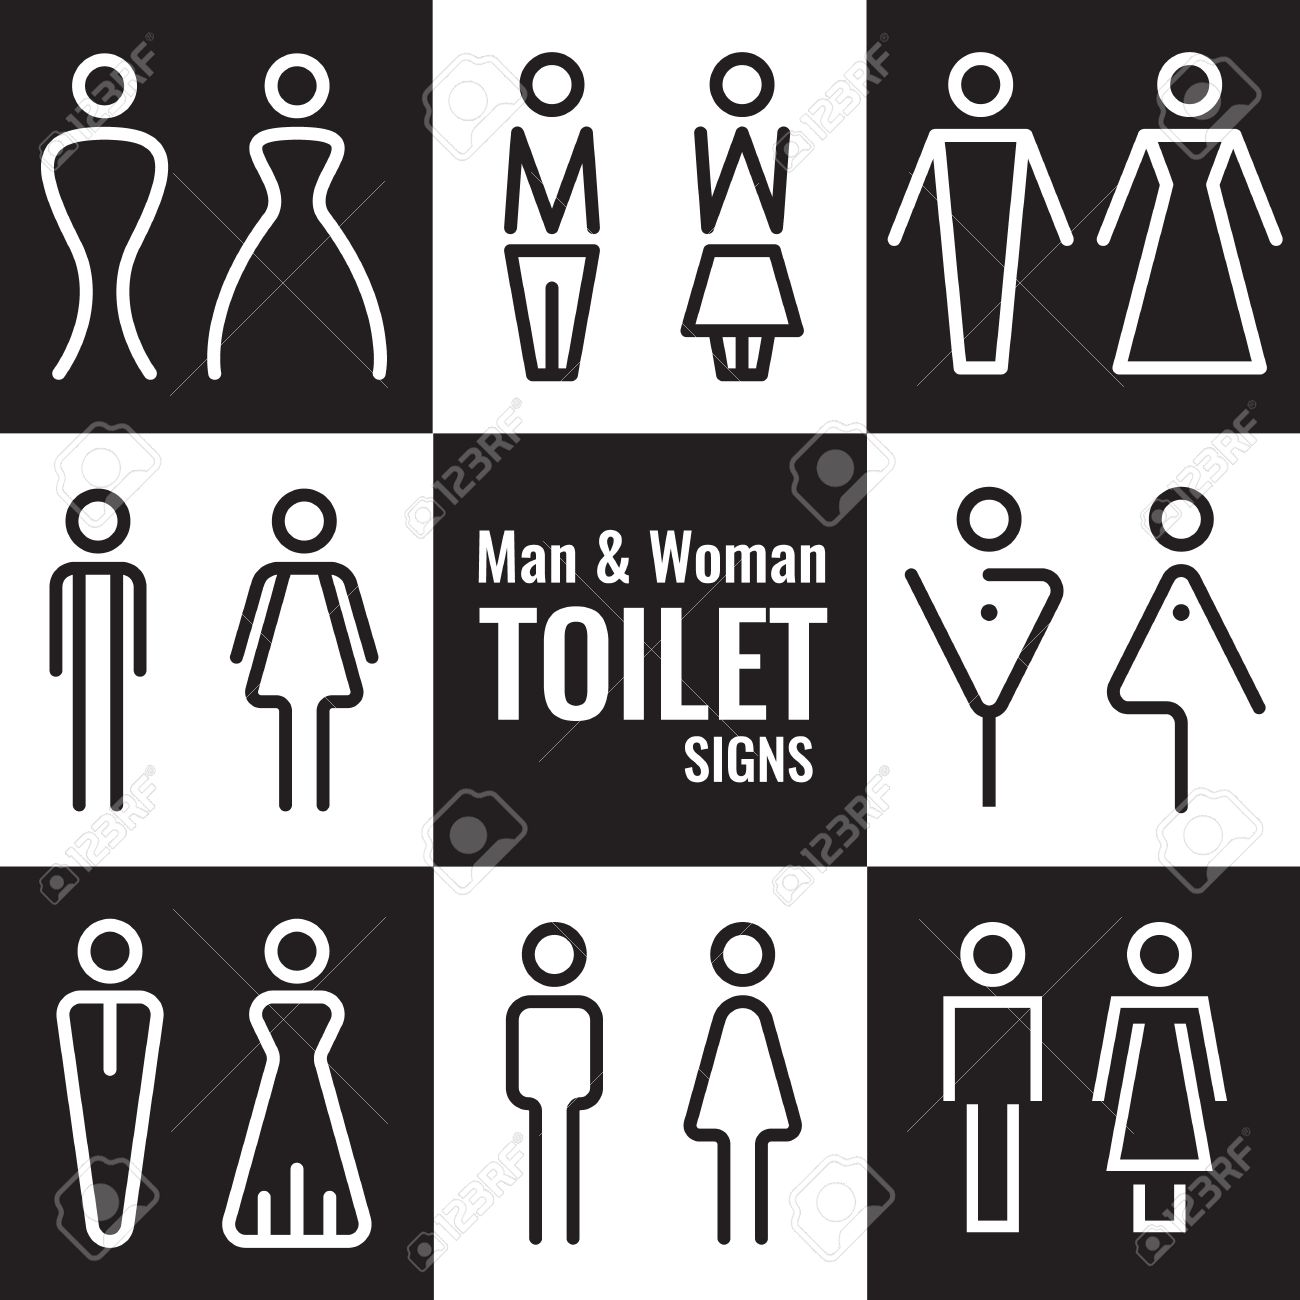 Man and Woman Toilet line sign vector set design - 61615747